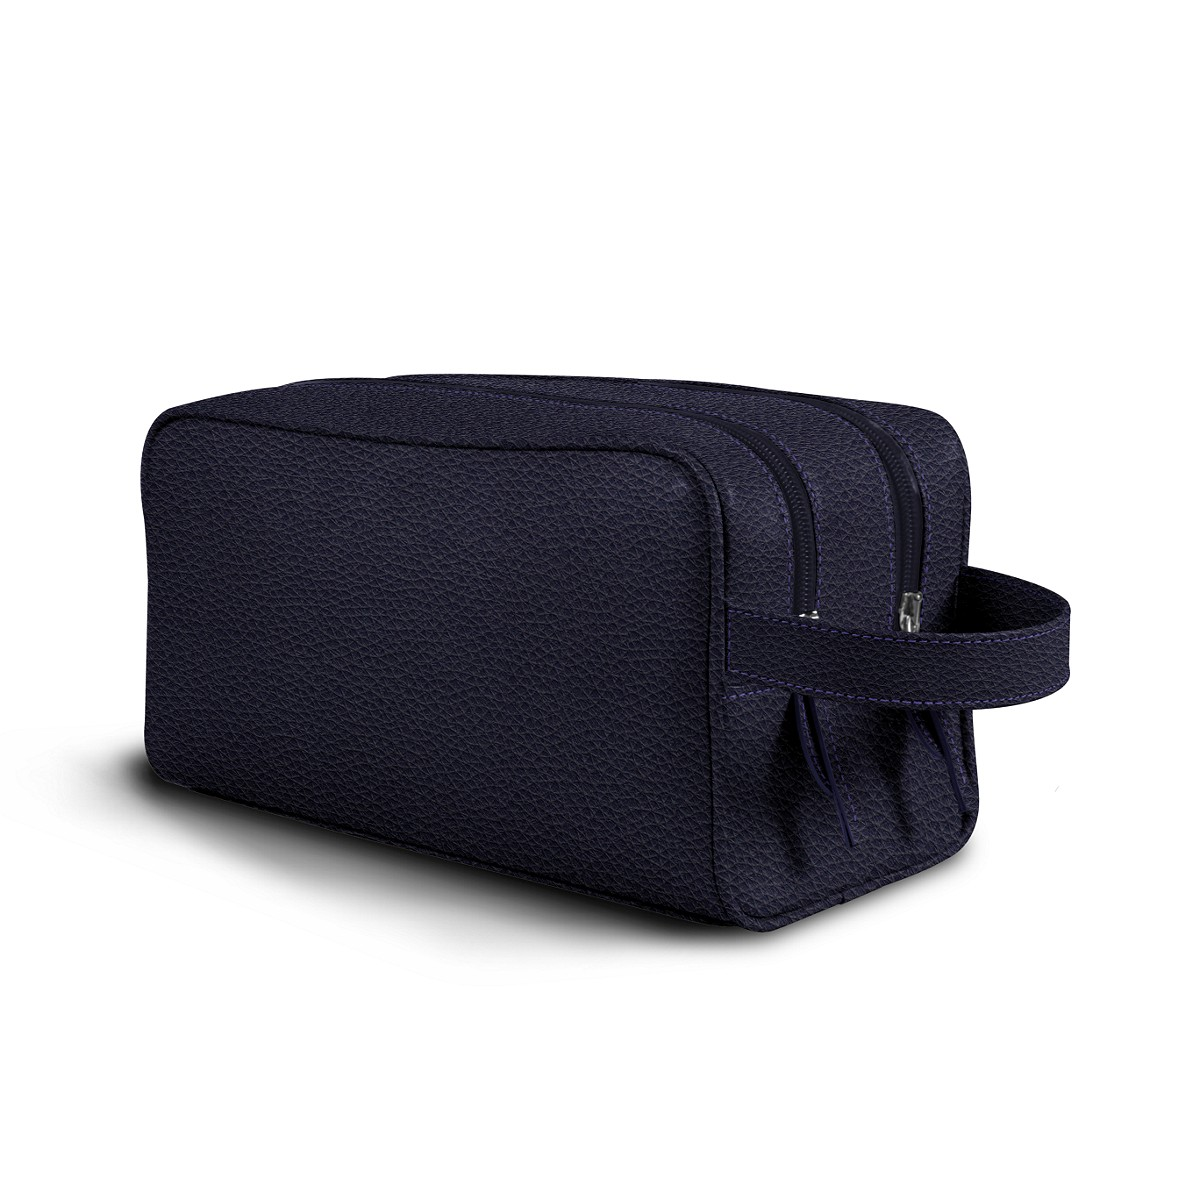 Wash Bag with 2 Foldable Compartments